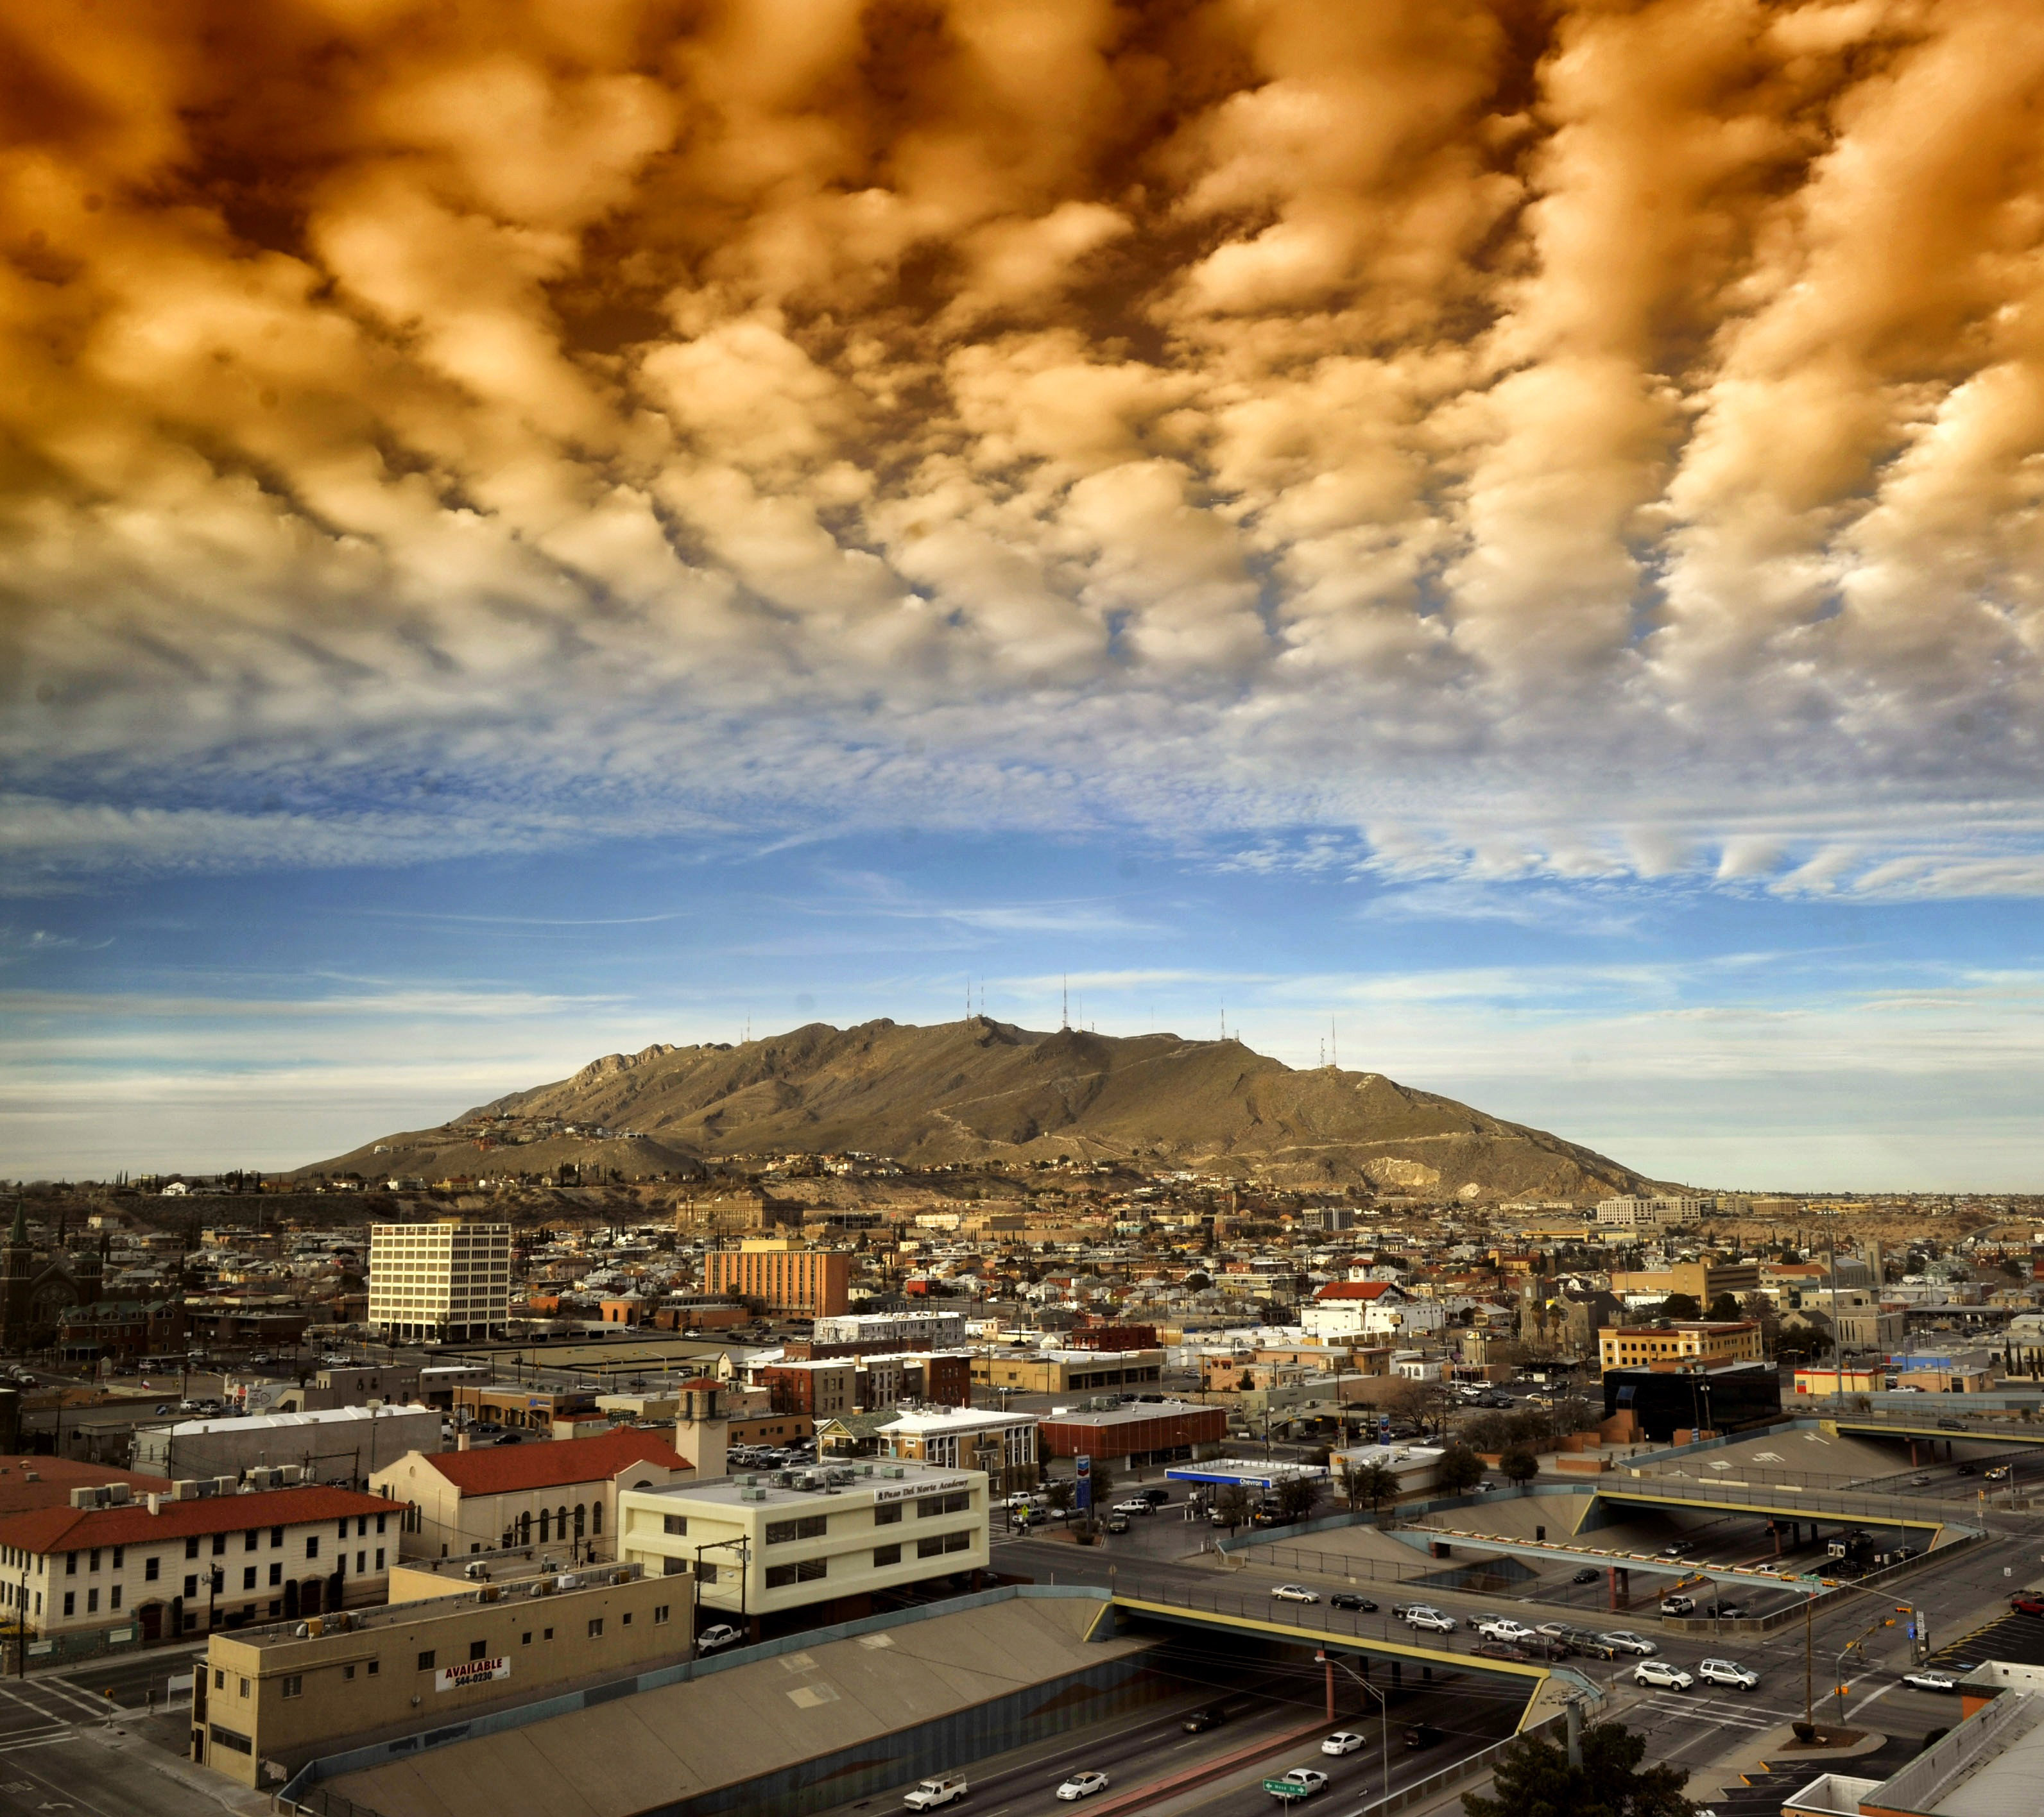 Represent the City in the prosecution of violations of City of El Paso ordinances and Class C misdemeanors. Support the relationship between the City of El Paso Desired: Legal Research Bar.